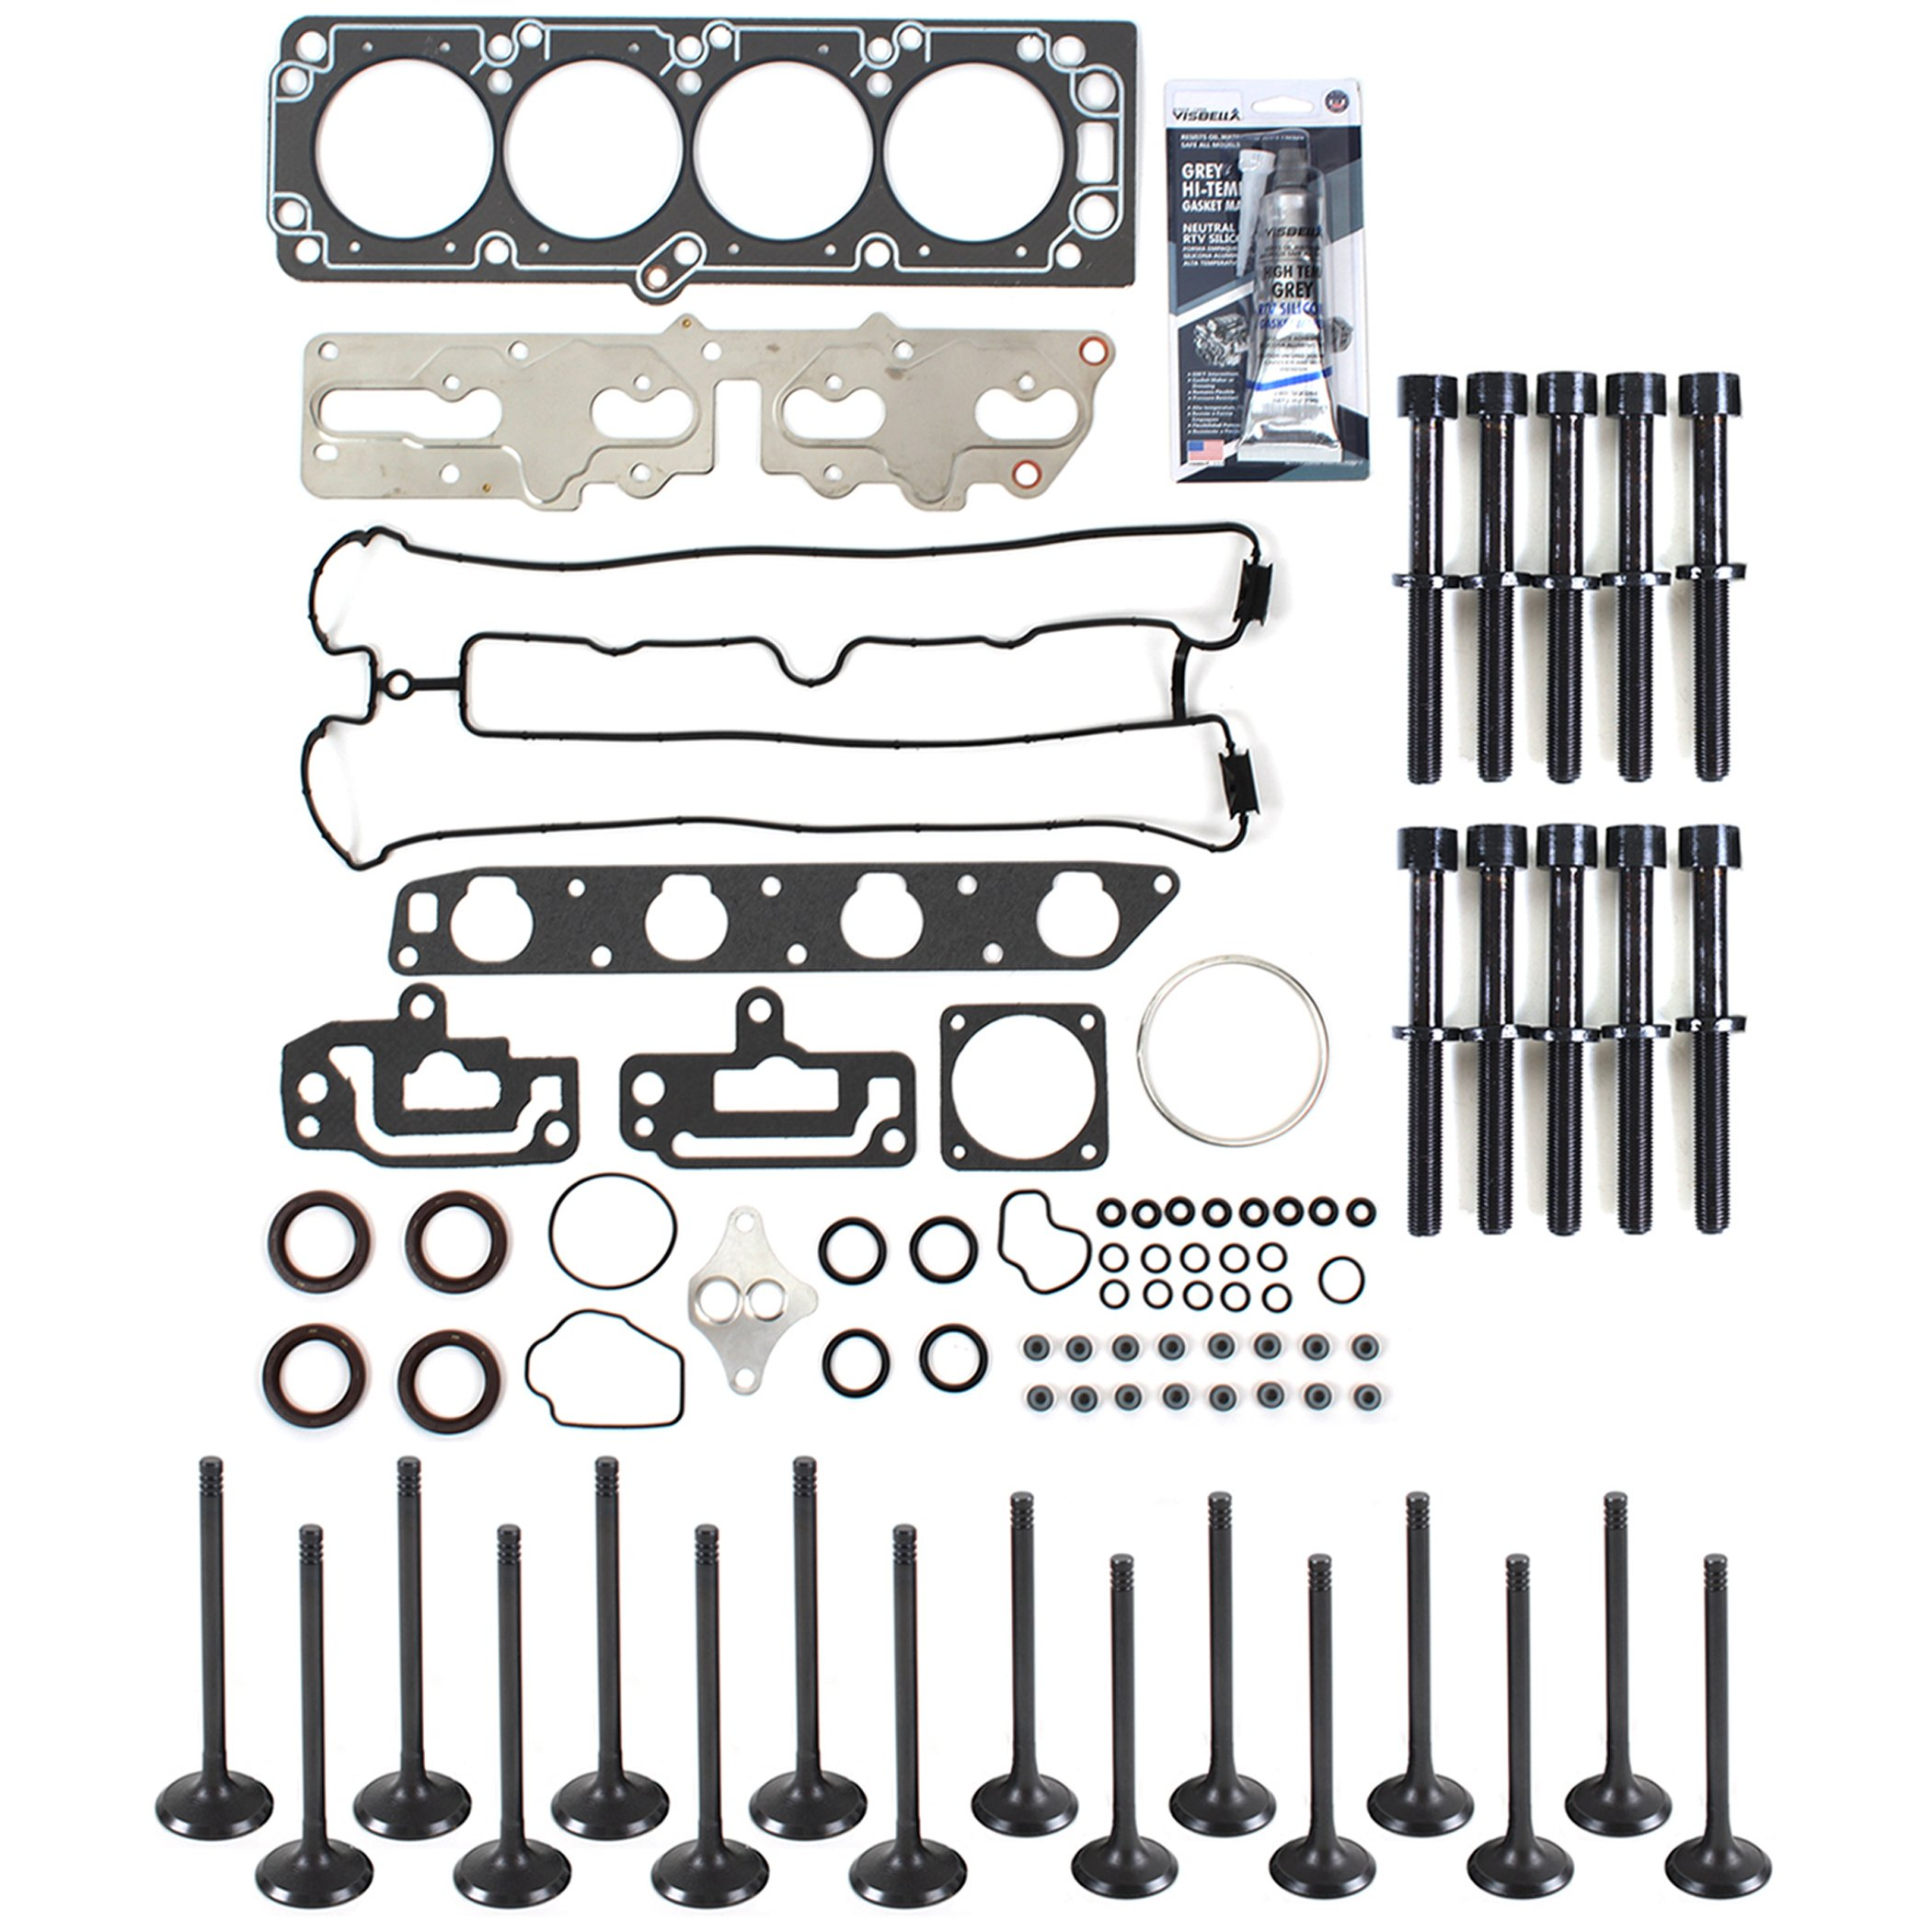 New CH8921HBSIVK Cylinder Head Gasket Set, Head Bolts Kit, Intake & Exhaust Engine Valves, RTV Gasket Silicone for 04-08 2.0L Chevrolet Optra / Suzuki Forenza Reno Engine Code A20DMS by CNS EngineParts